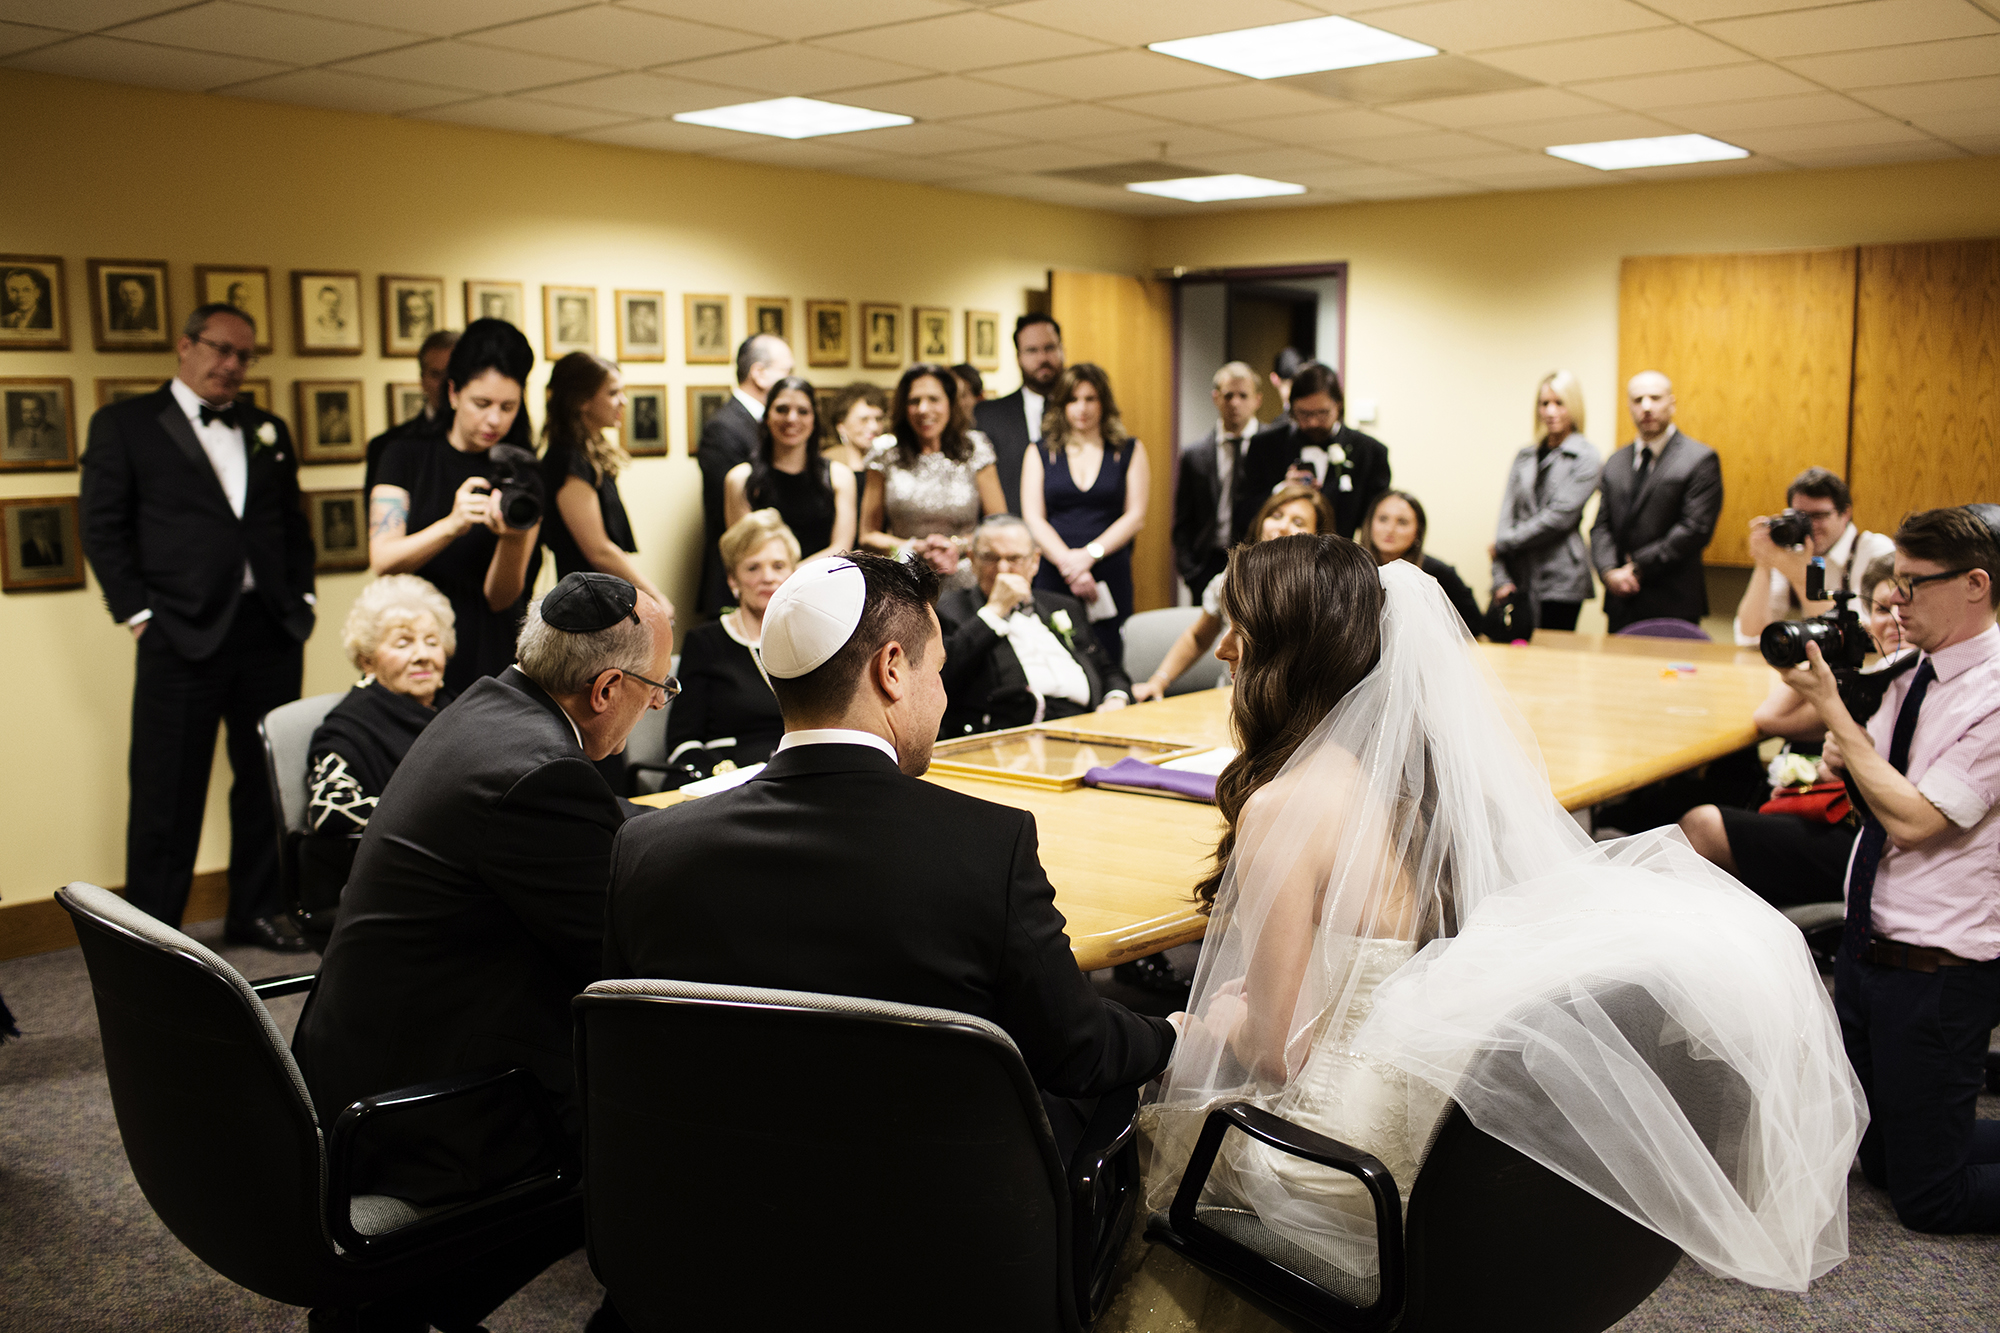 Adath Jeshurun Congregation Wedding Photos | Photography by Photogen Inc. | Eliesa Johnson | Based in Minneapolis, Minnesota